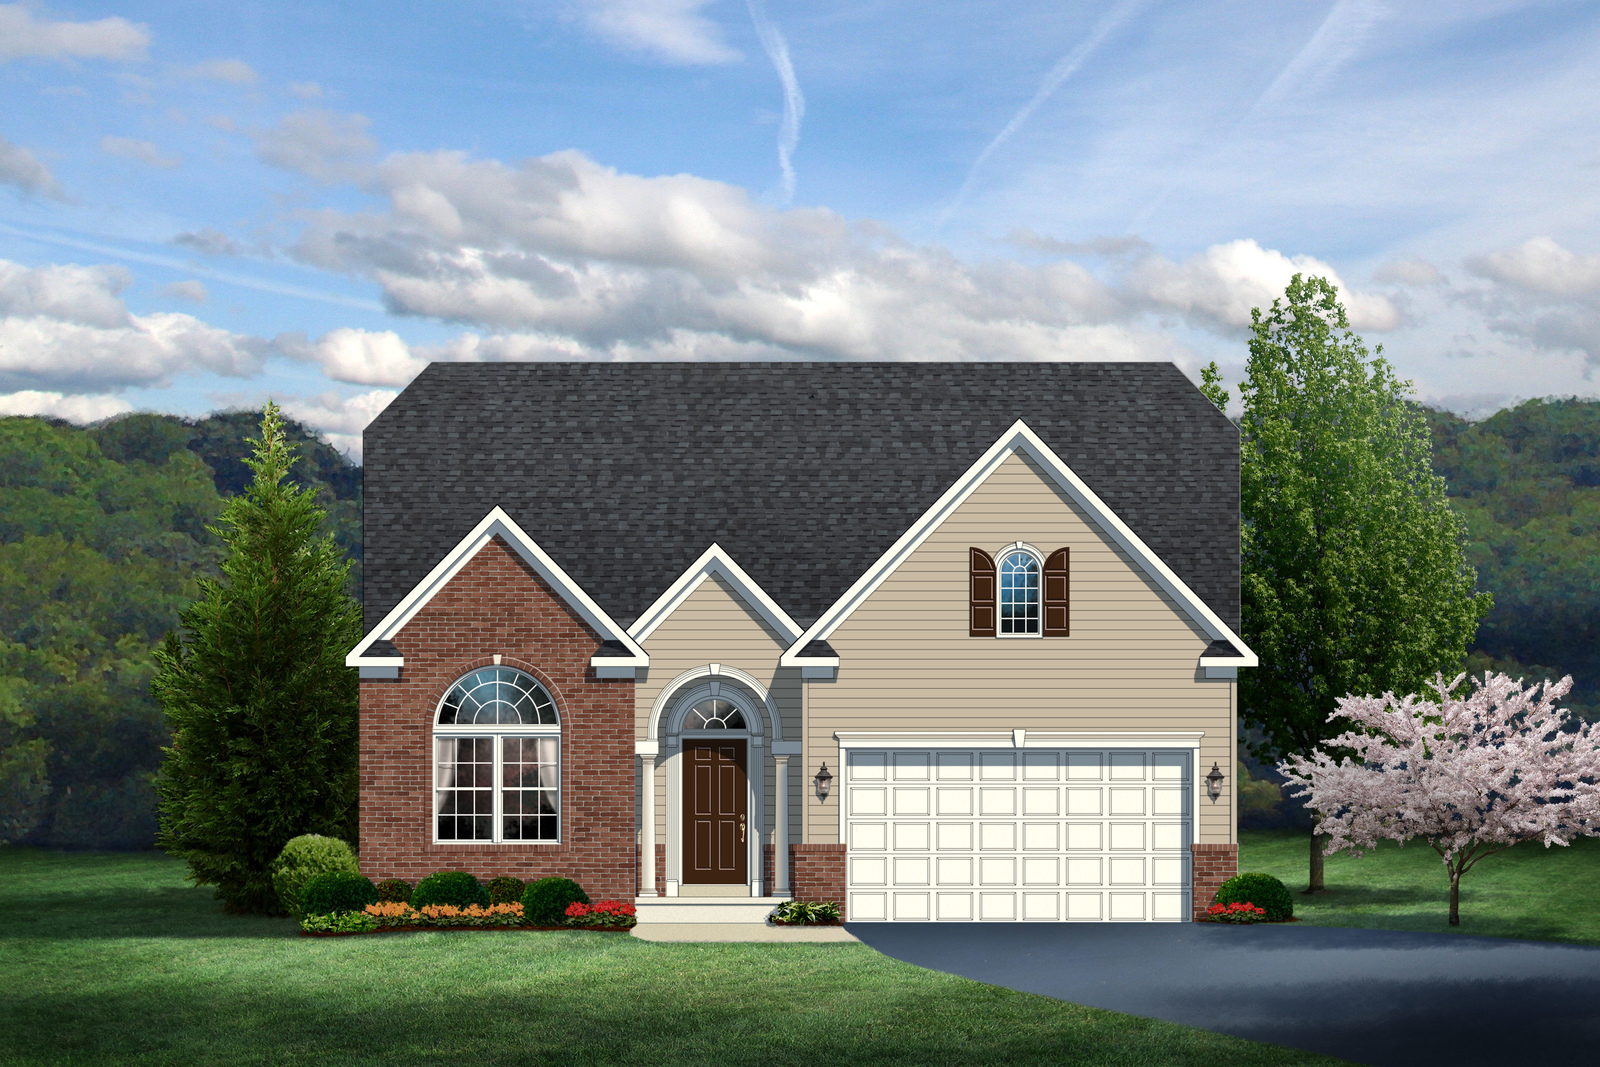 New Daventry Home Model For Sale Heartland Homes